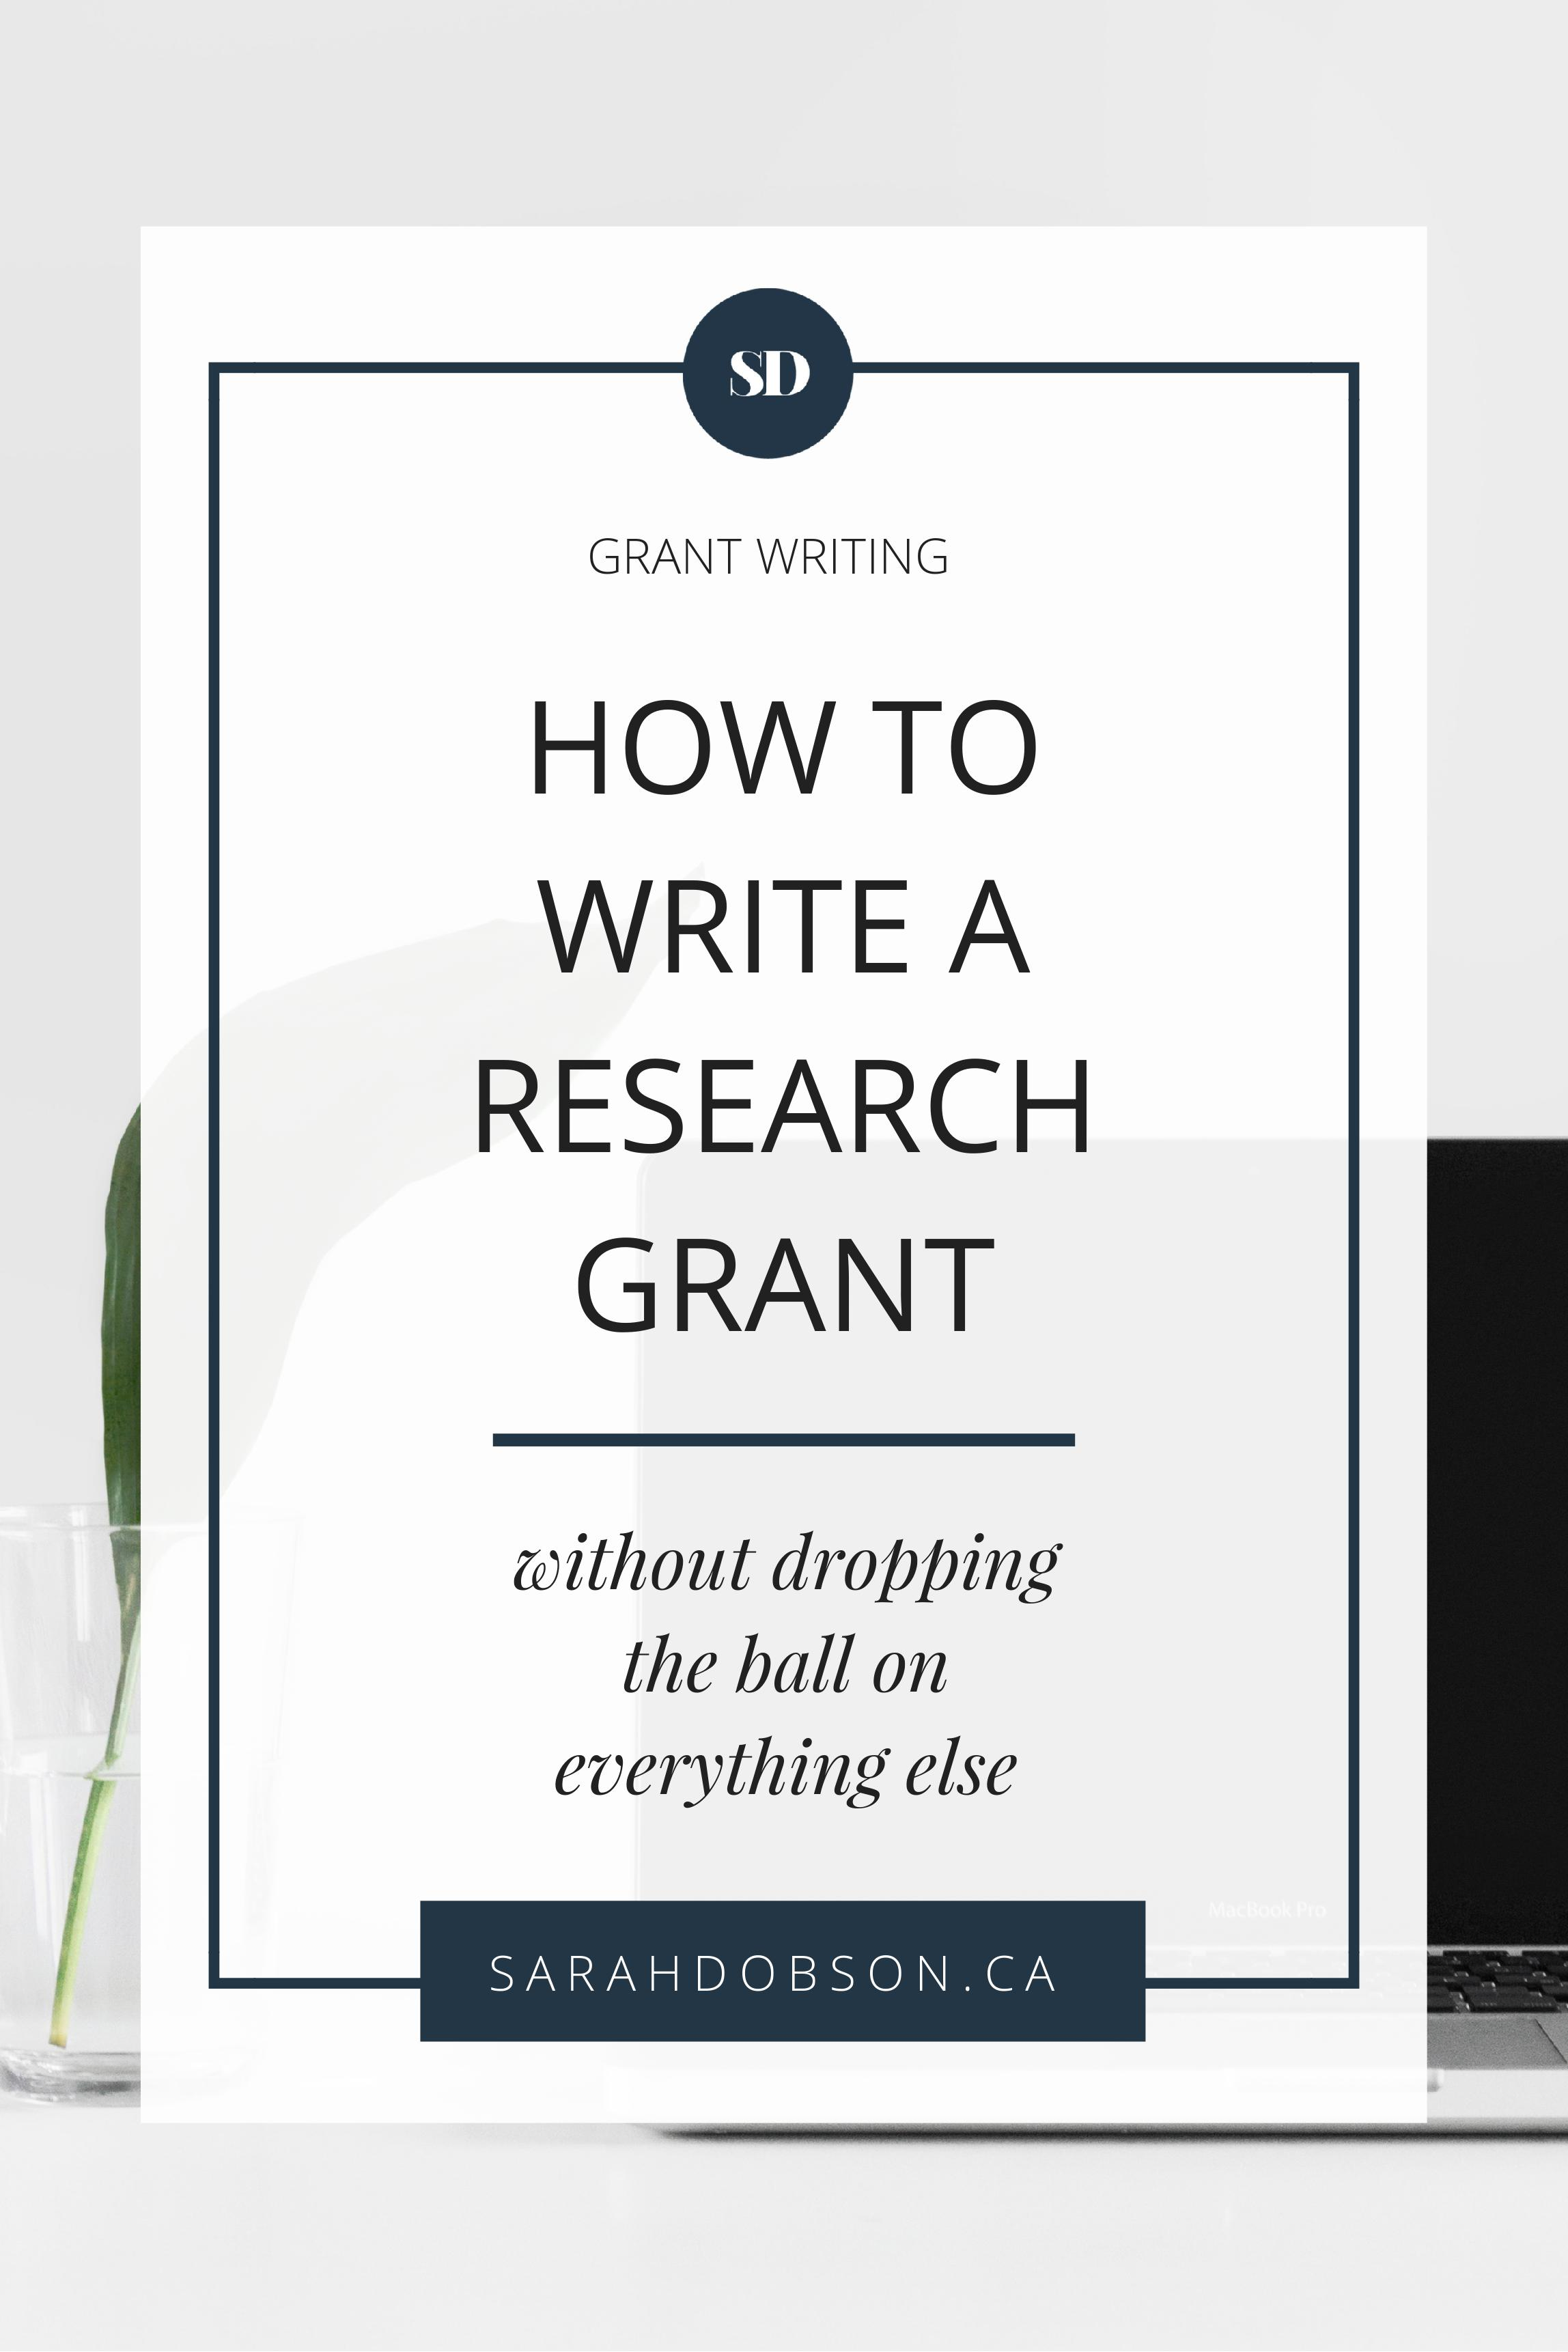 NIH CIHR Grant Writing.jpg